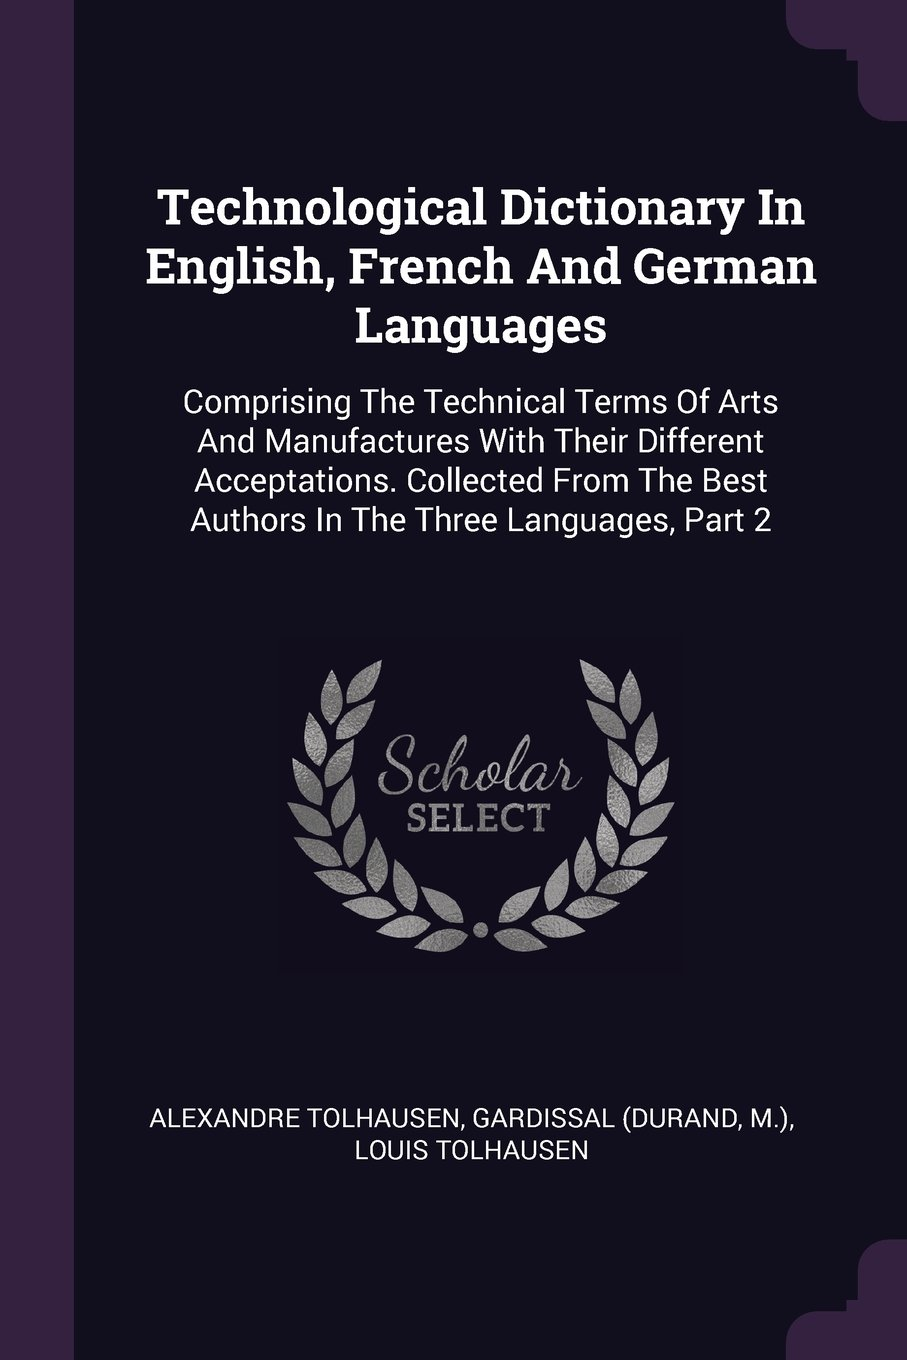 Technological Dictionary In English, French And German Languages: Comprising The Technical Terms Of Arts And Manufactures With Their Different ... Best Authors In The Three Languages, Part 2